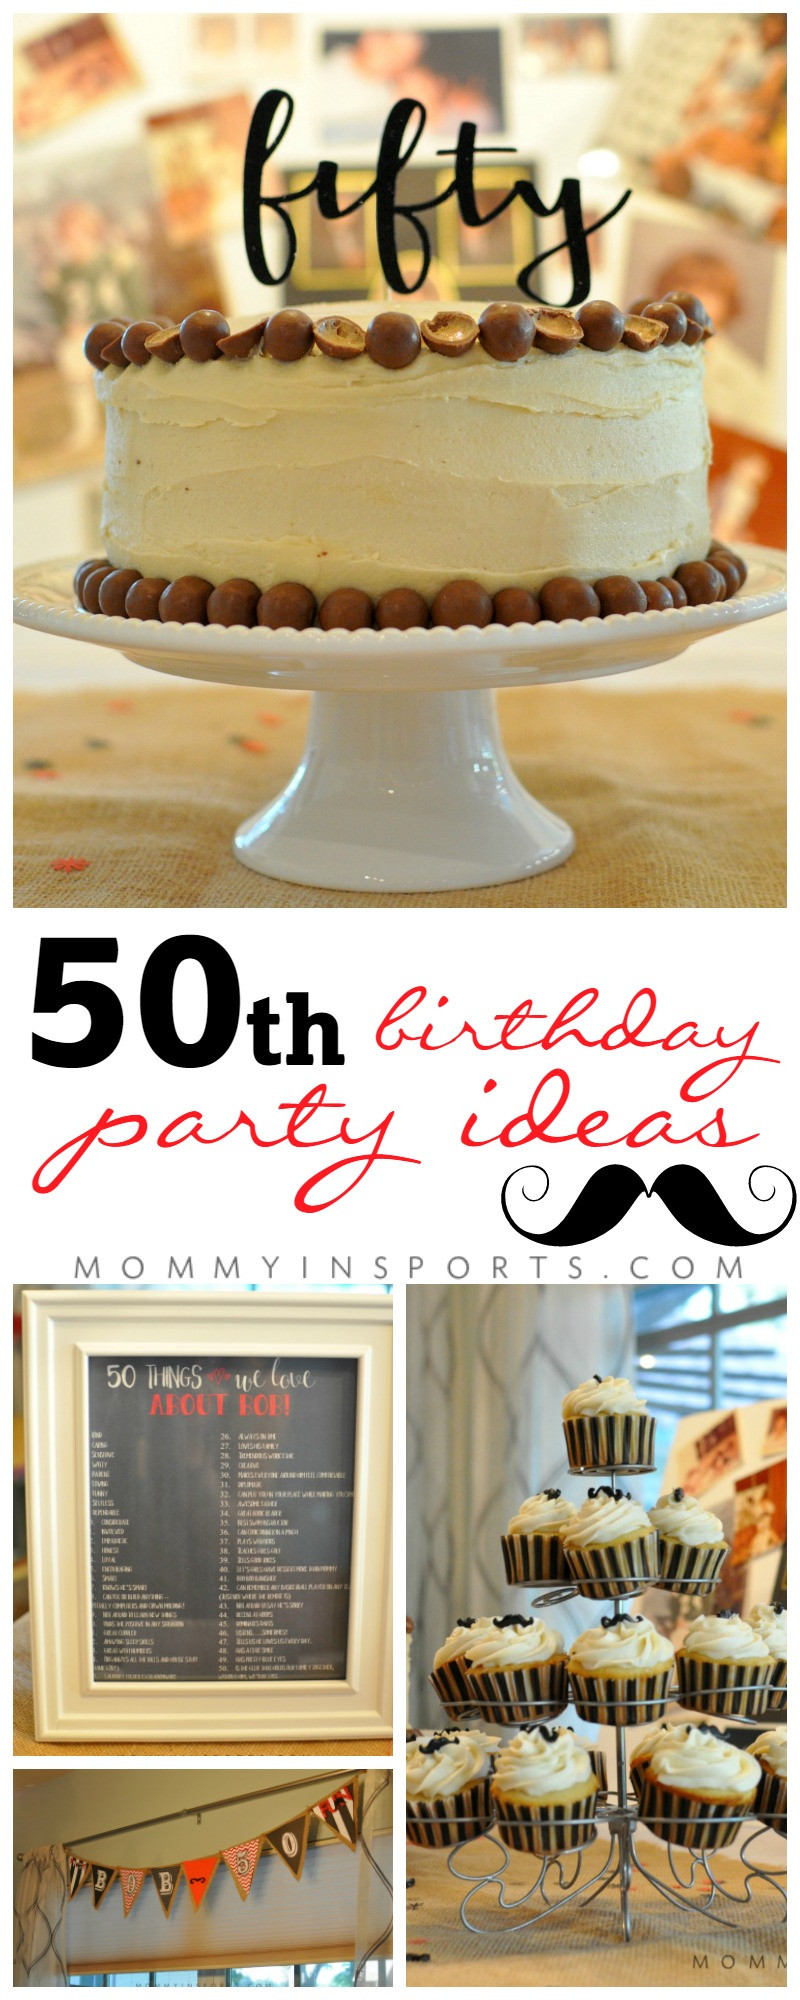 Best ideas about 50th Birthday Decorations For Him . Save or Pin 50th Birthday Party Ideas Kristen Hewitt Now.